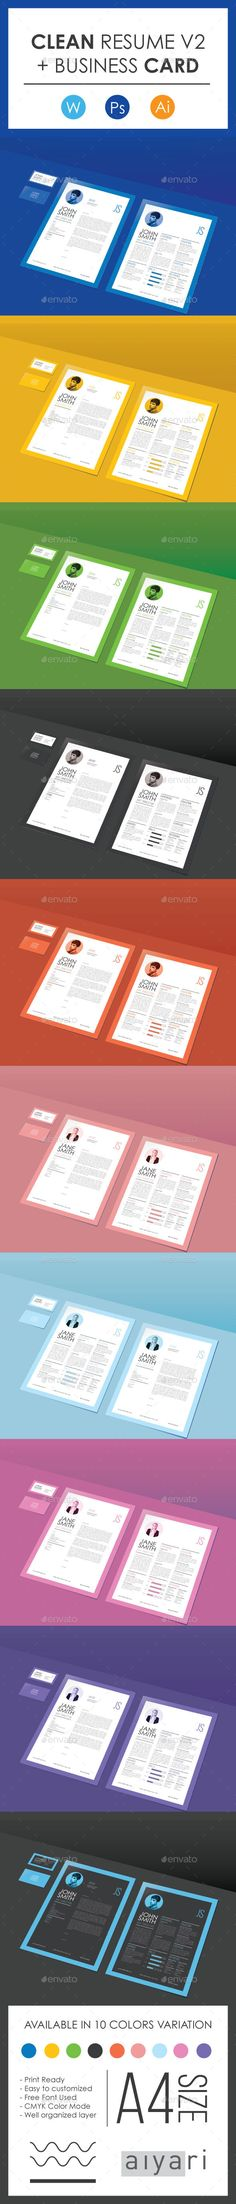 Clean CV & Resume V2 with Business Card